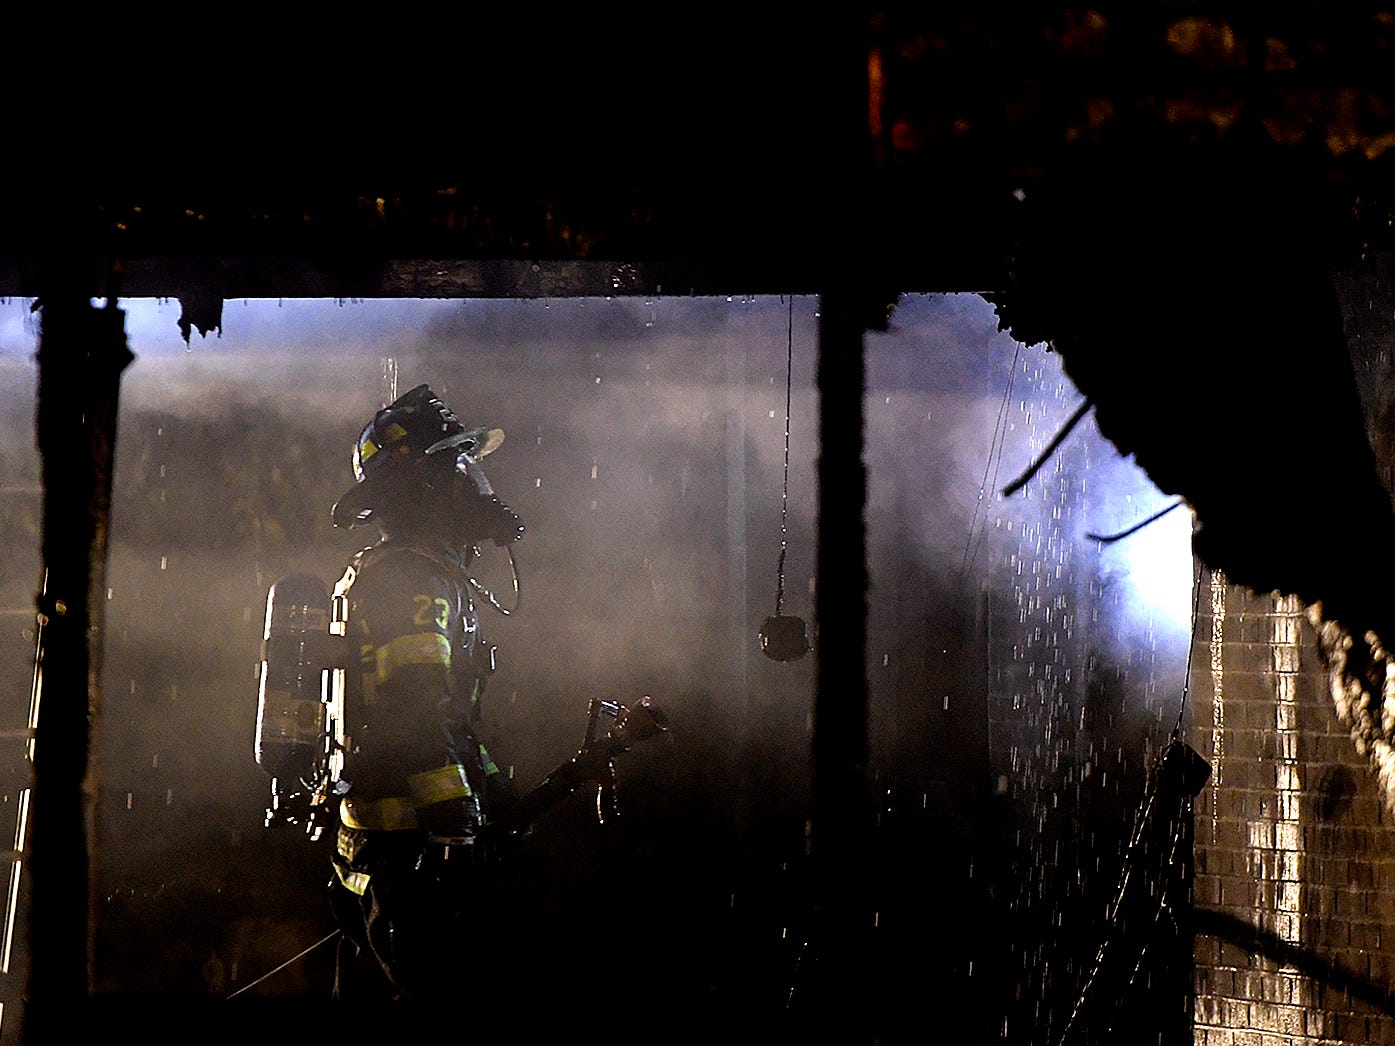 Firefighters battle a two-alarm blaze in a home in Dillsburg, Monday, November 12, 2018. 